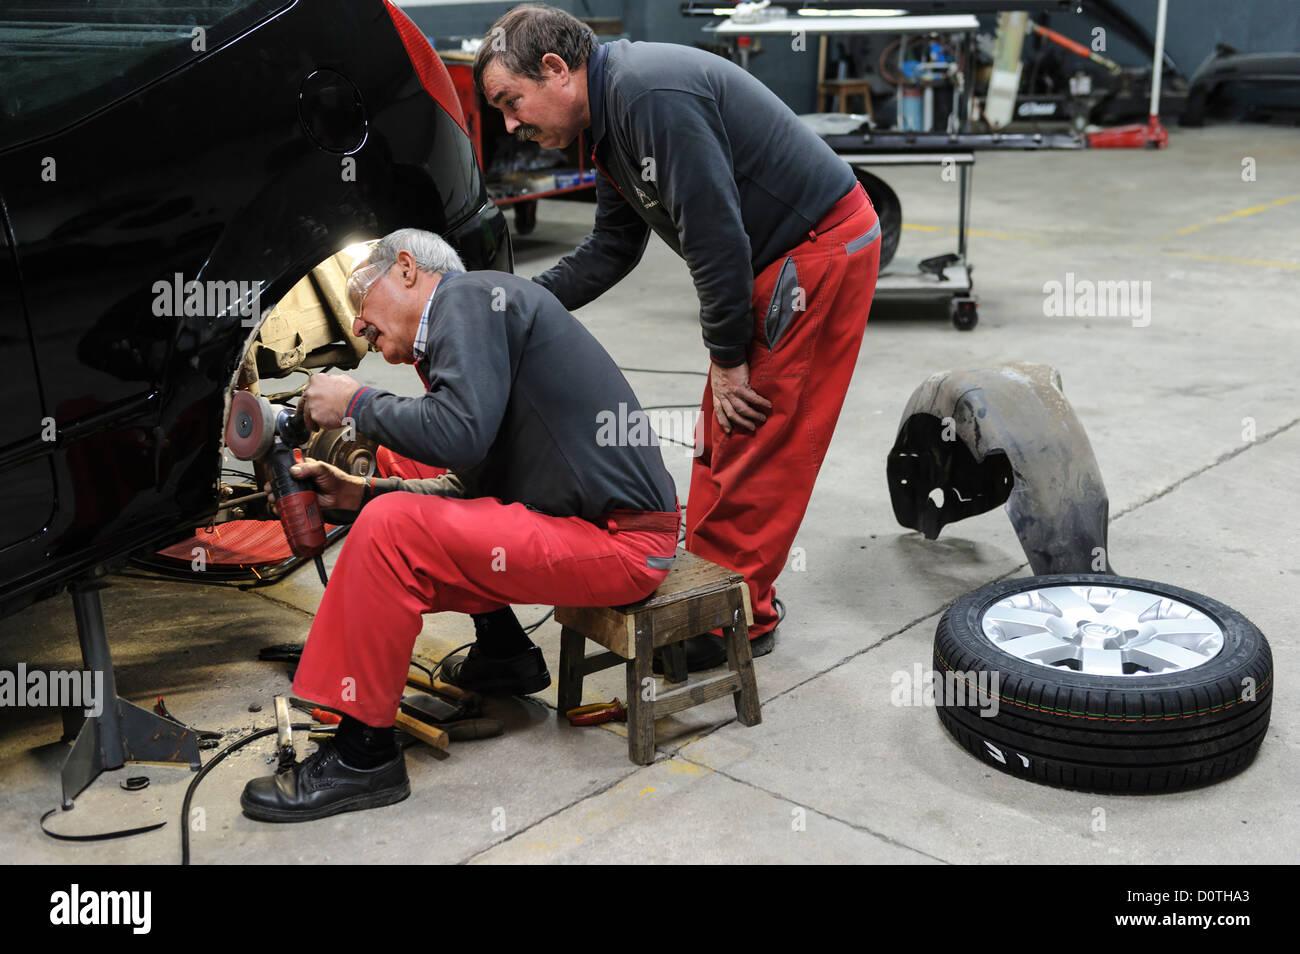 Two mechanics working in auto garage - Stock Image